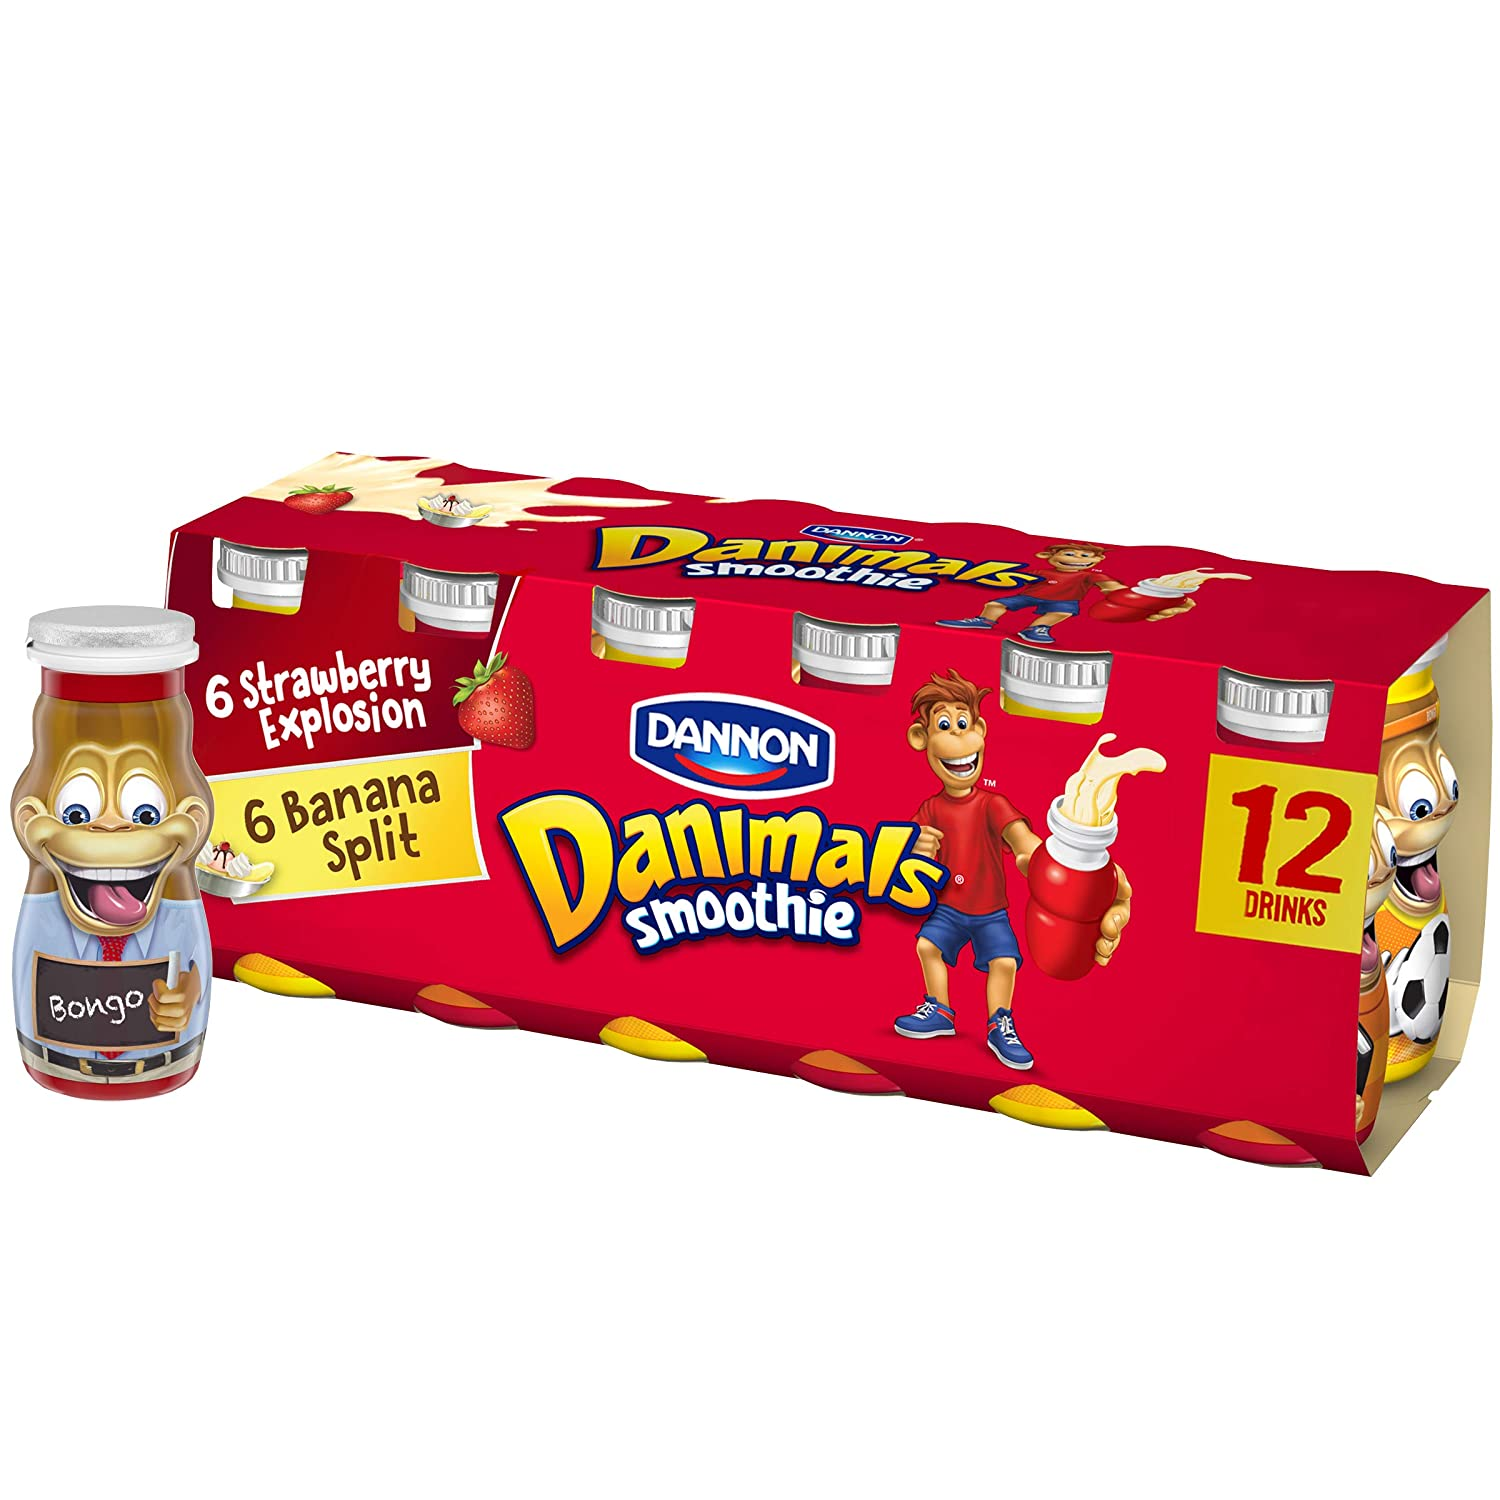 Danimals Smoothies, Strawberry Explosion & Banana Split, Gluten-Free, Non-GMO Project Verified, 3.1 oz., 12 Pack